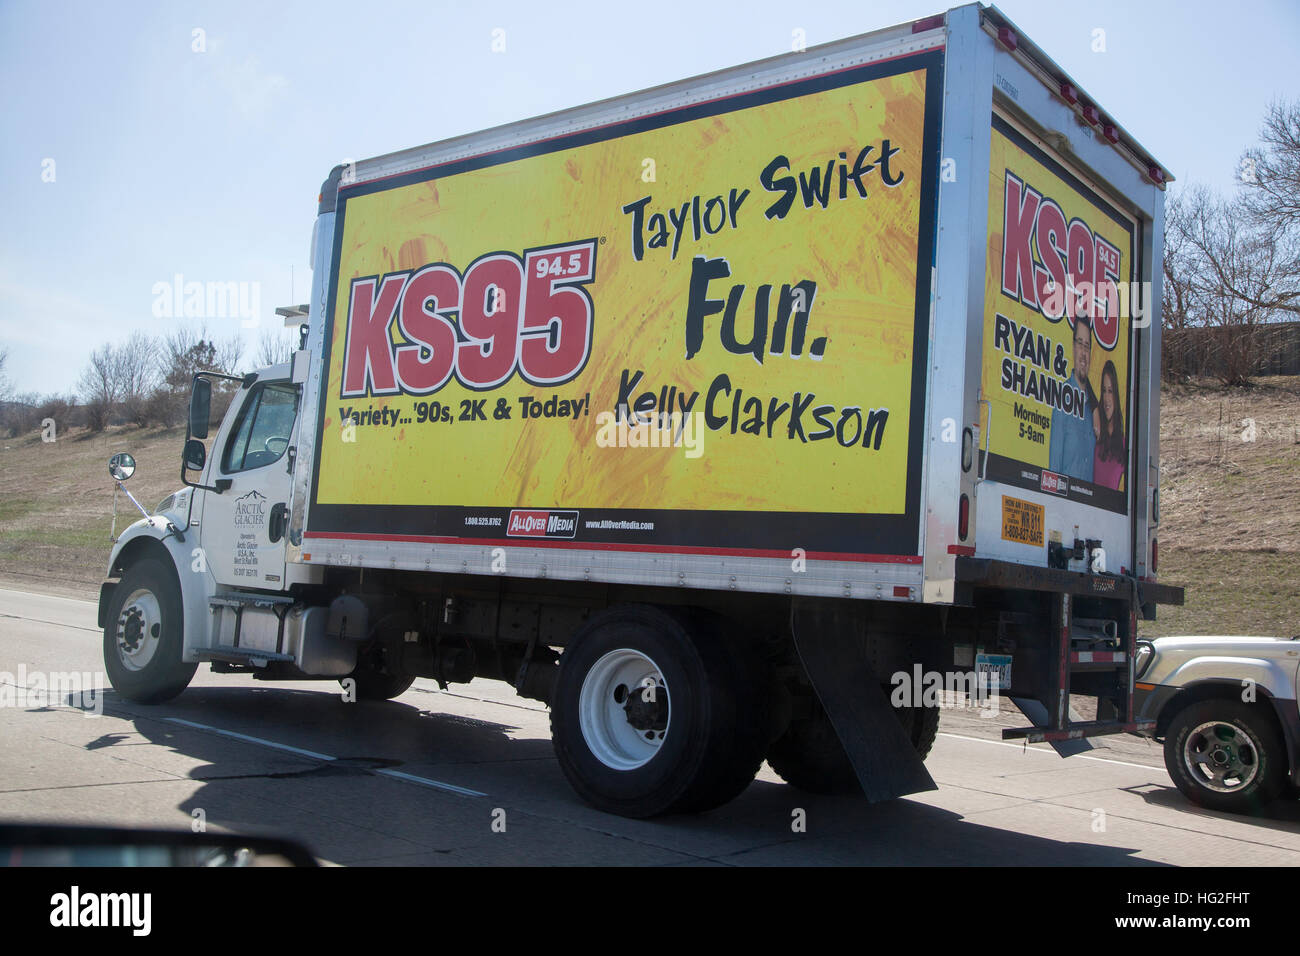 Transport Truck Advertising The Music Of Taylor Swift Kelly Clarkson Stock Photo Alamy